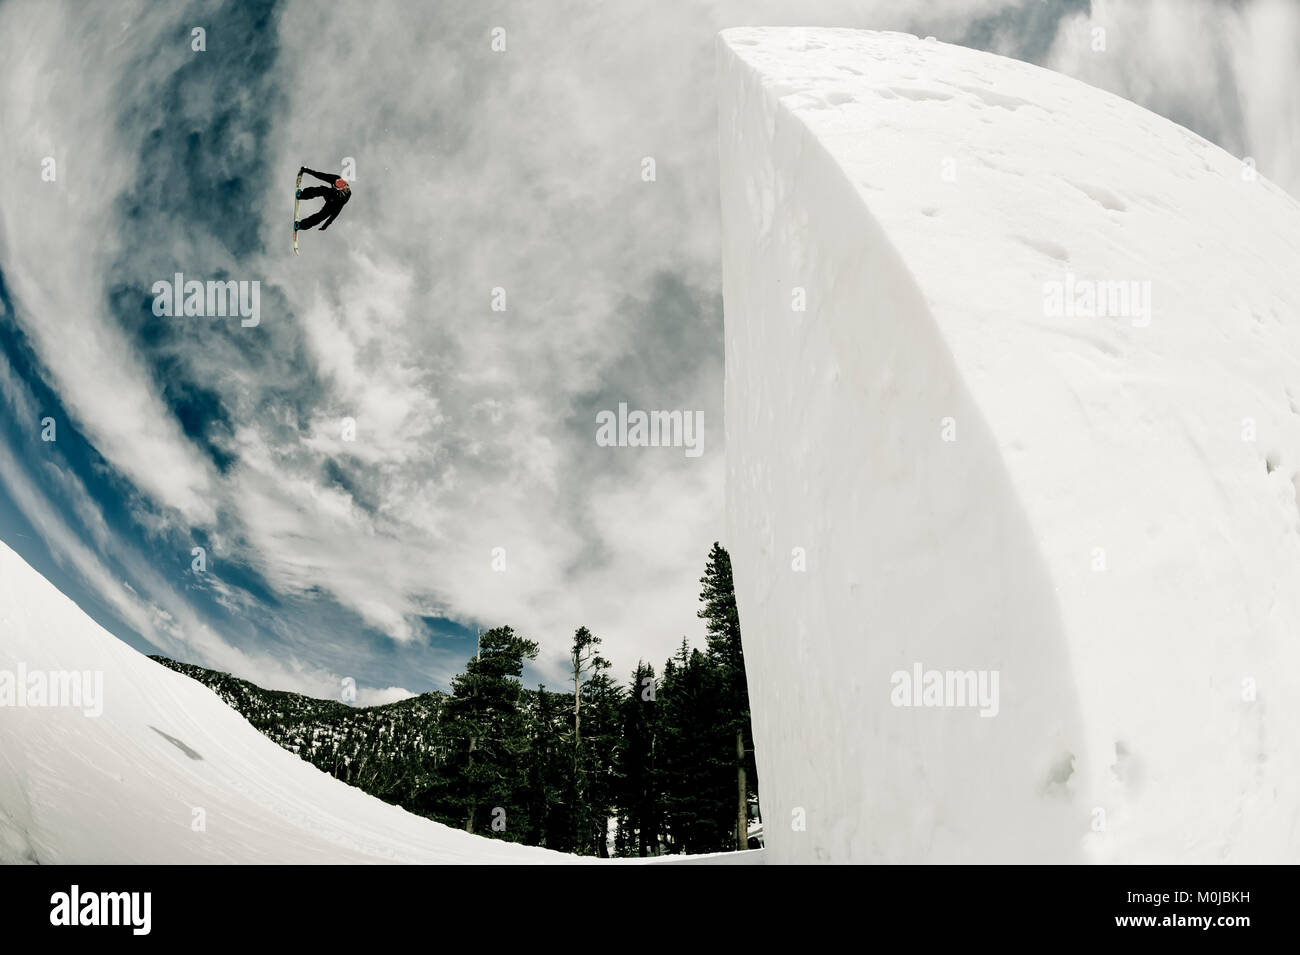 A professional snowboarder flipping mid-air at Heavenly Resort; South Lake Tahoe, California, United States of America Stock Photo